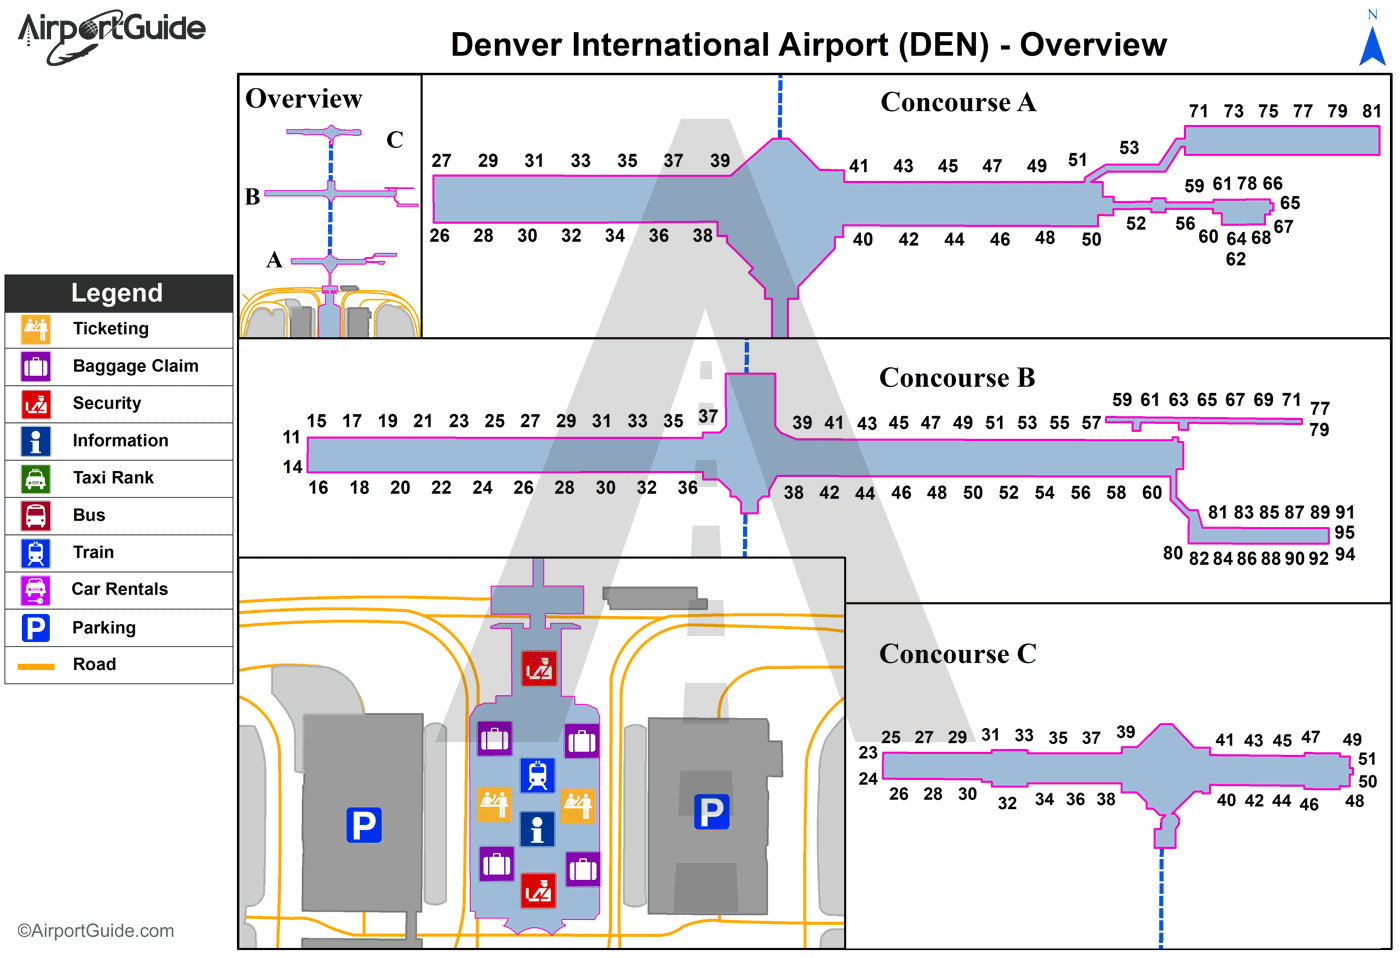 Denver - Denver International (DEN) Airport Terminal Map - Overview